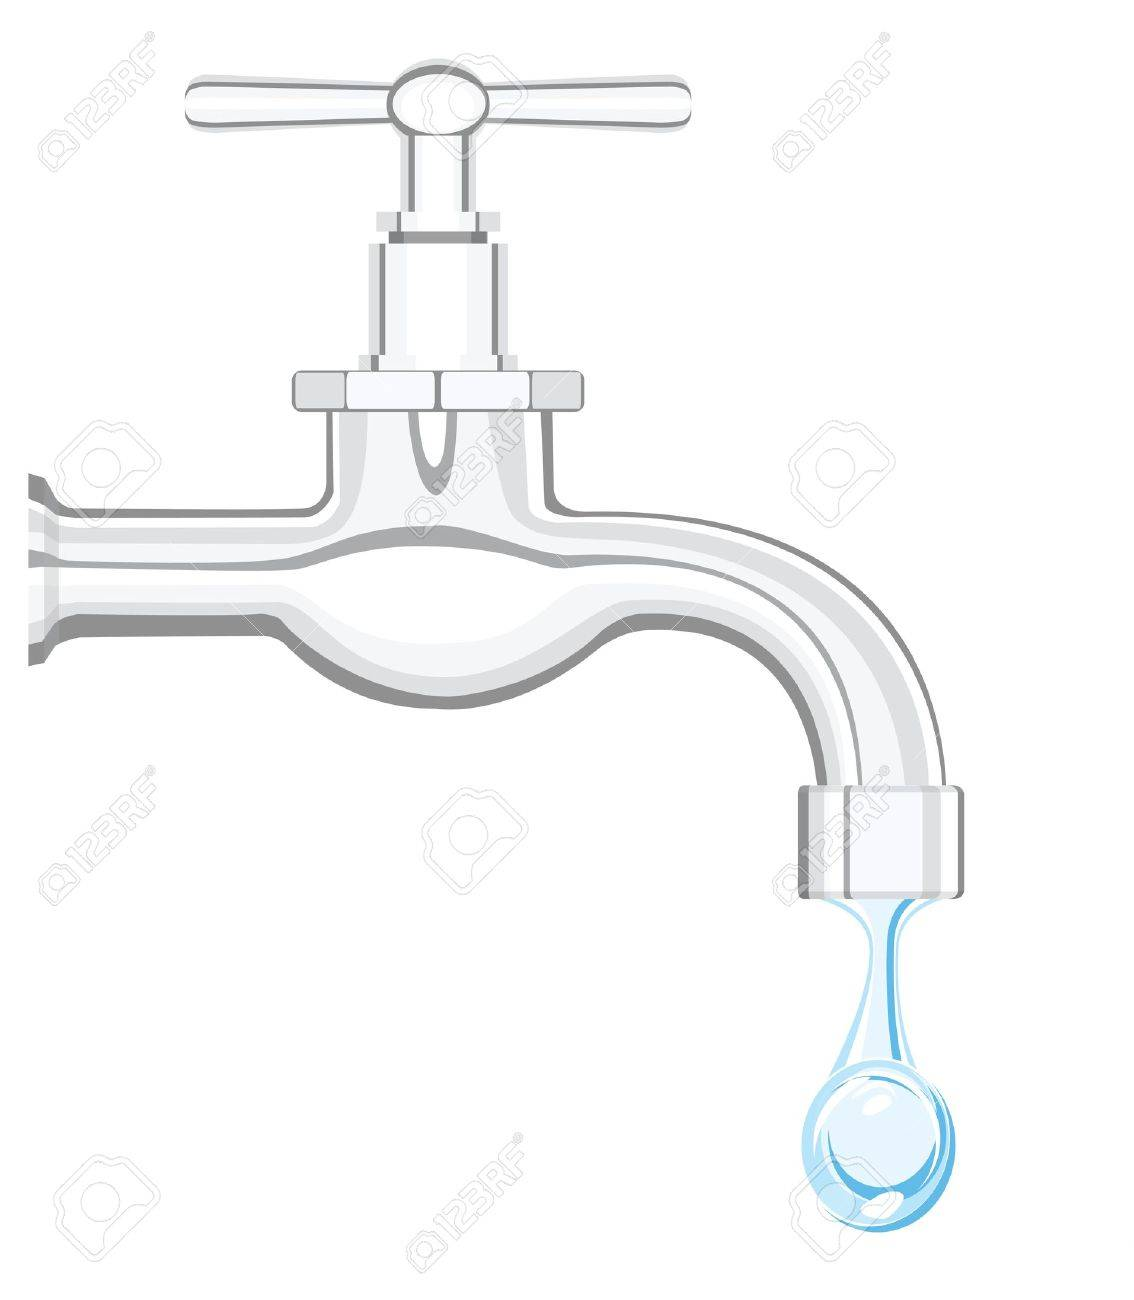 a water tap with realistic flowing water, on a white background Stock Vector - 10462174